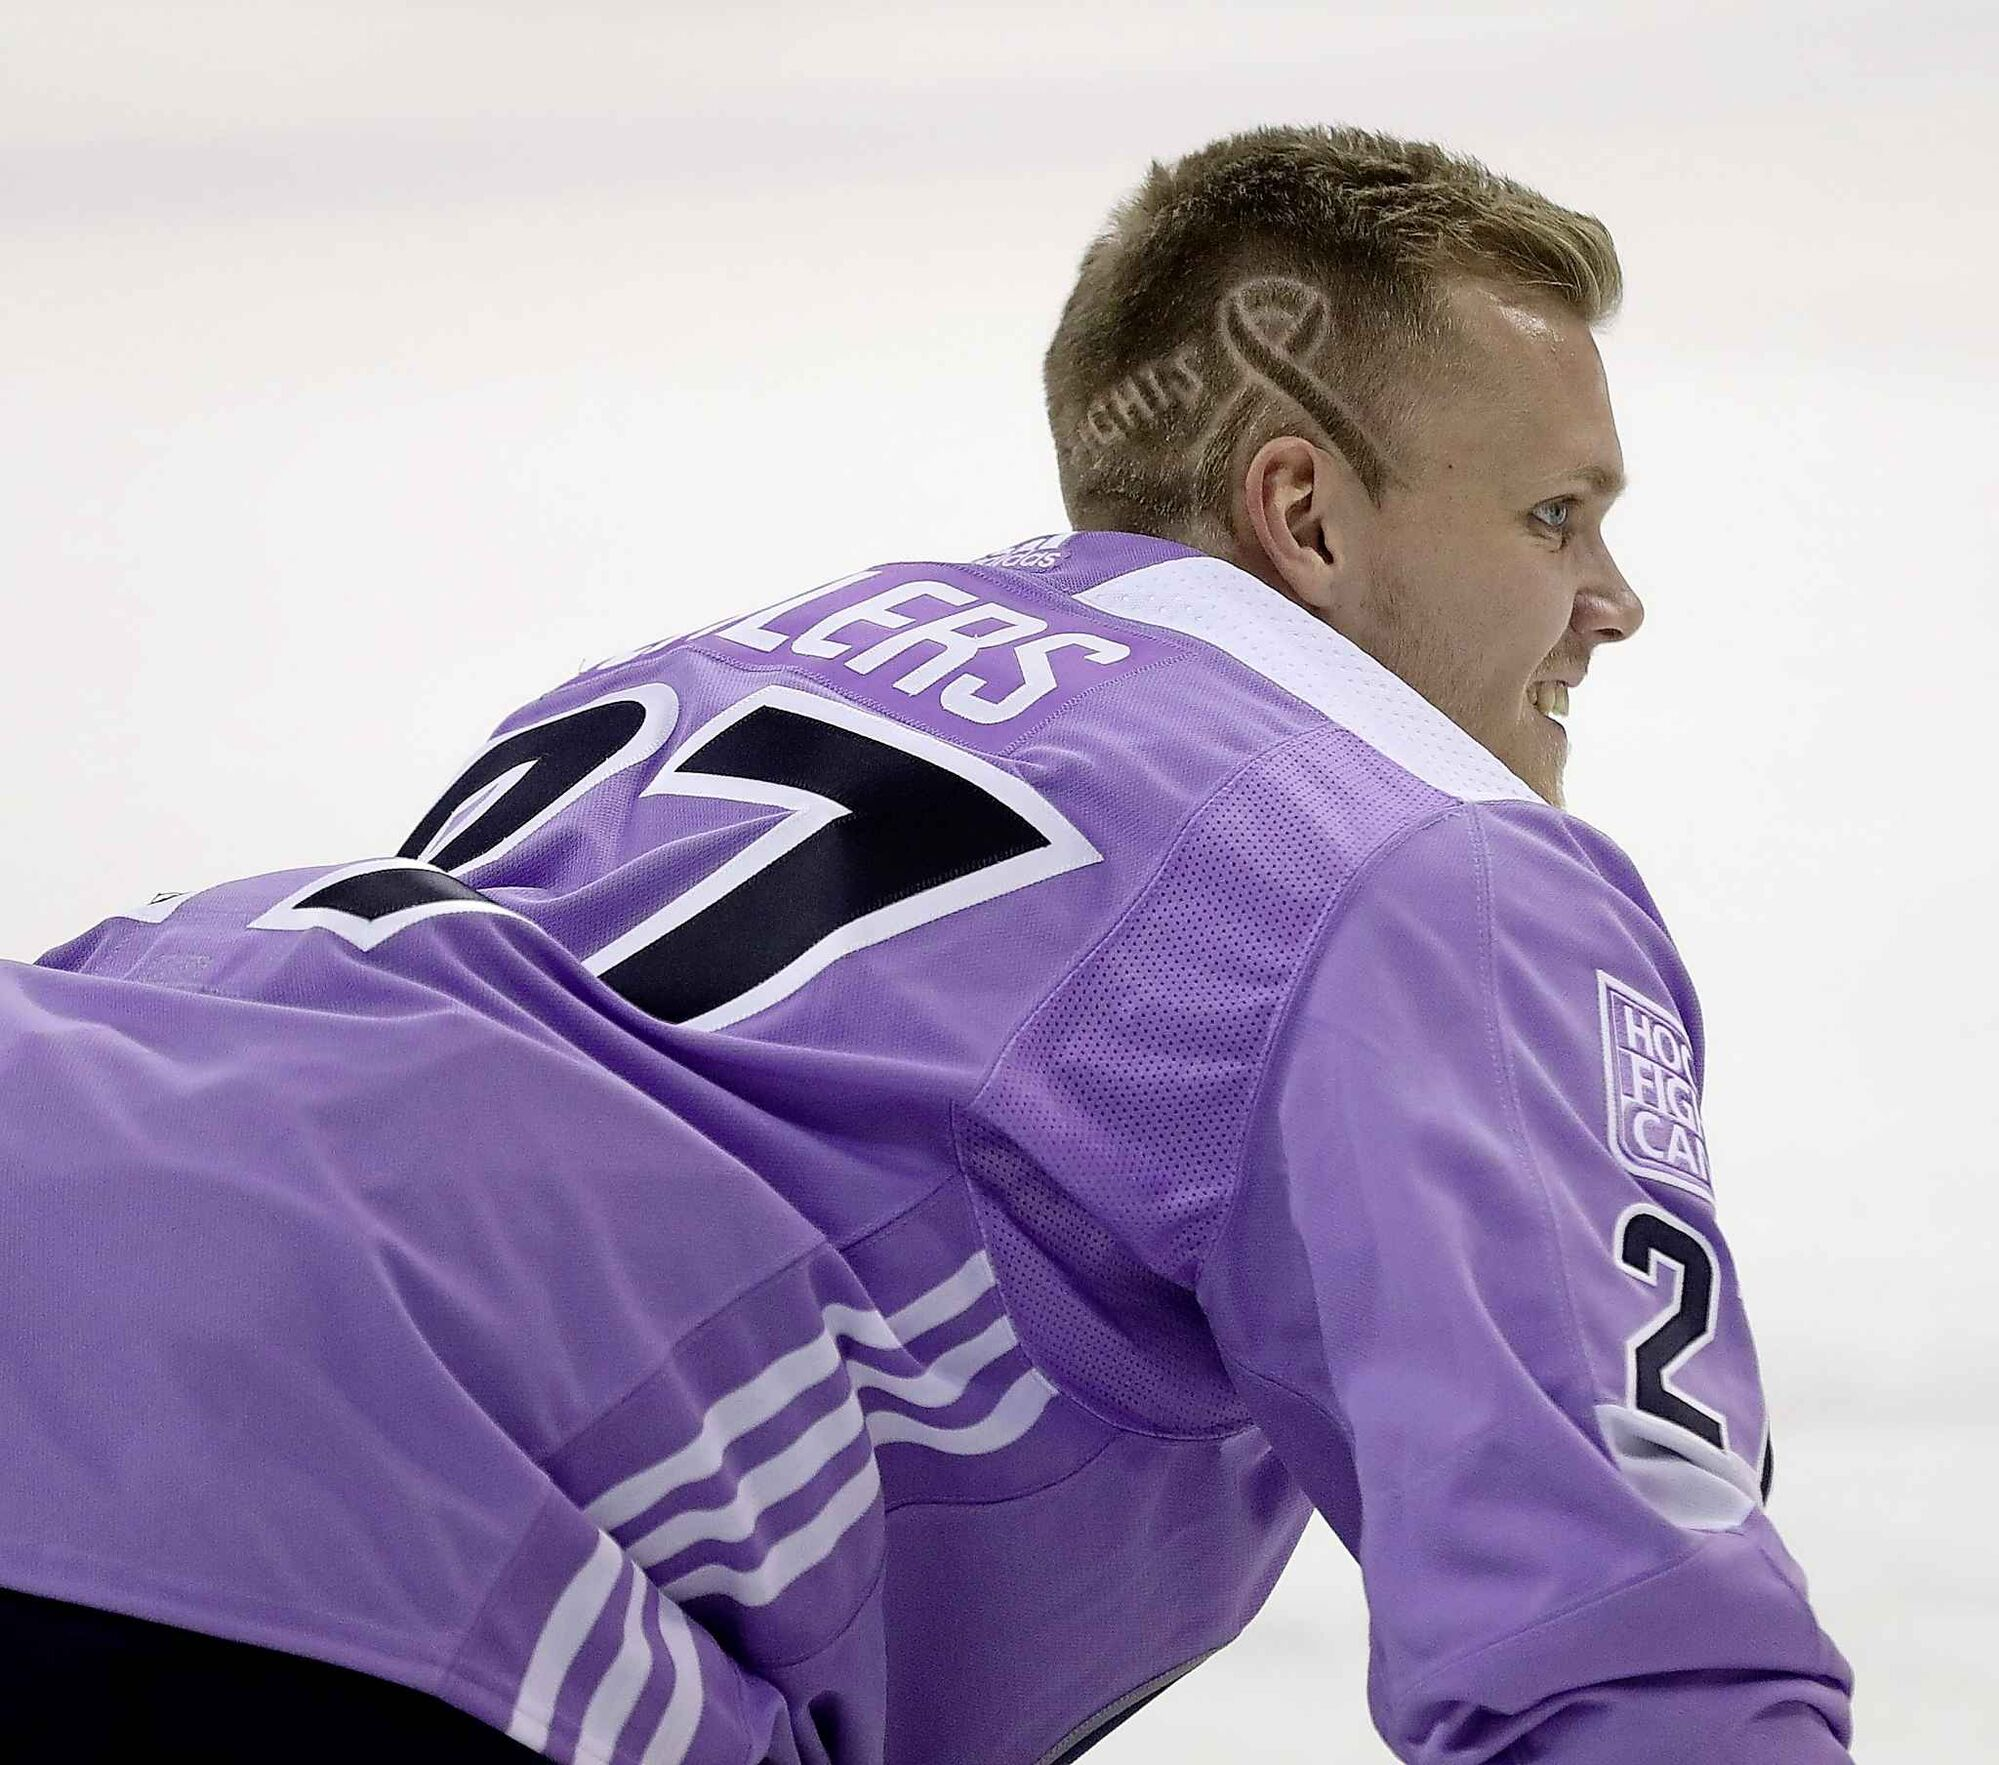 new arrivals 6731a b1c9d Prepping for Panthers - Winnipeg Free Press